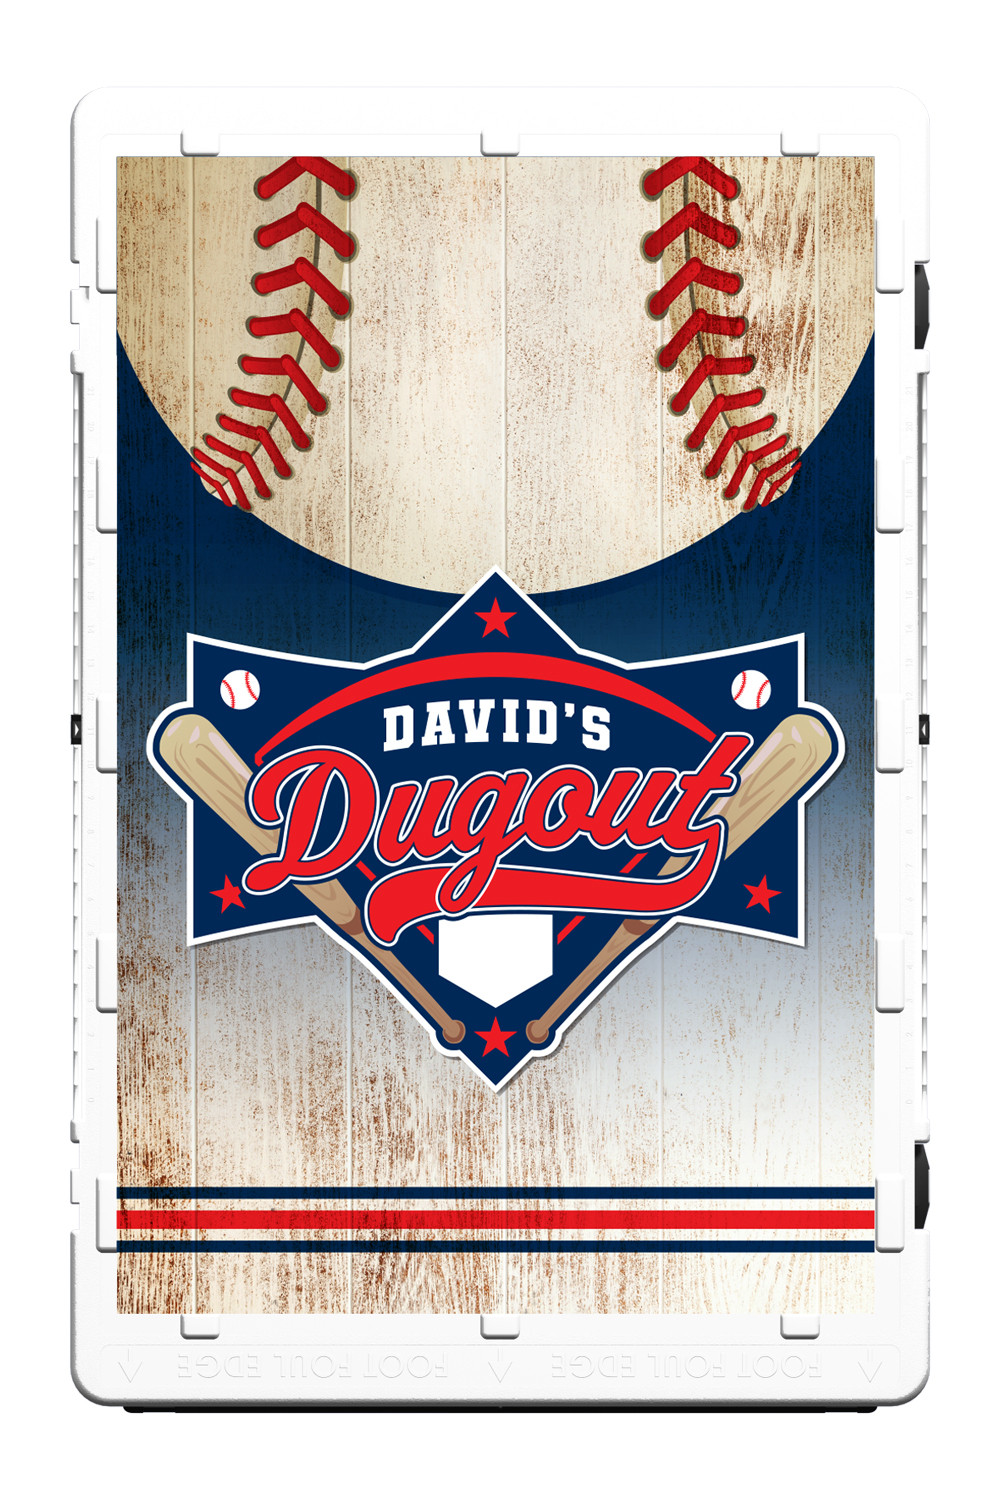 Baseball Dugout Screens (only) by Baggo